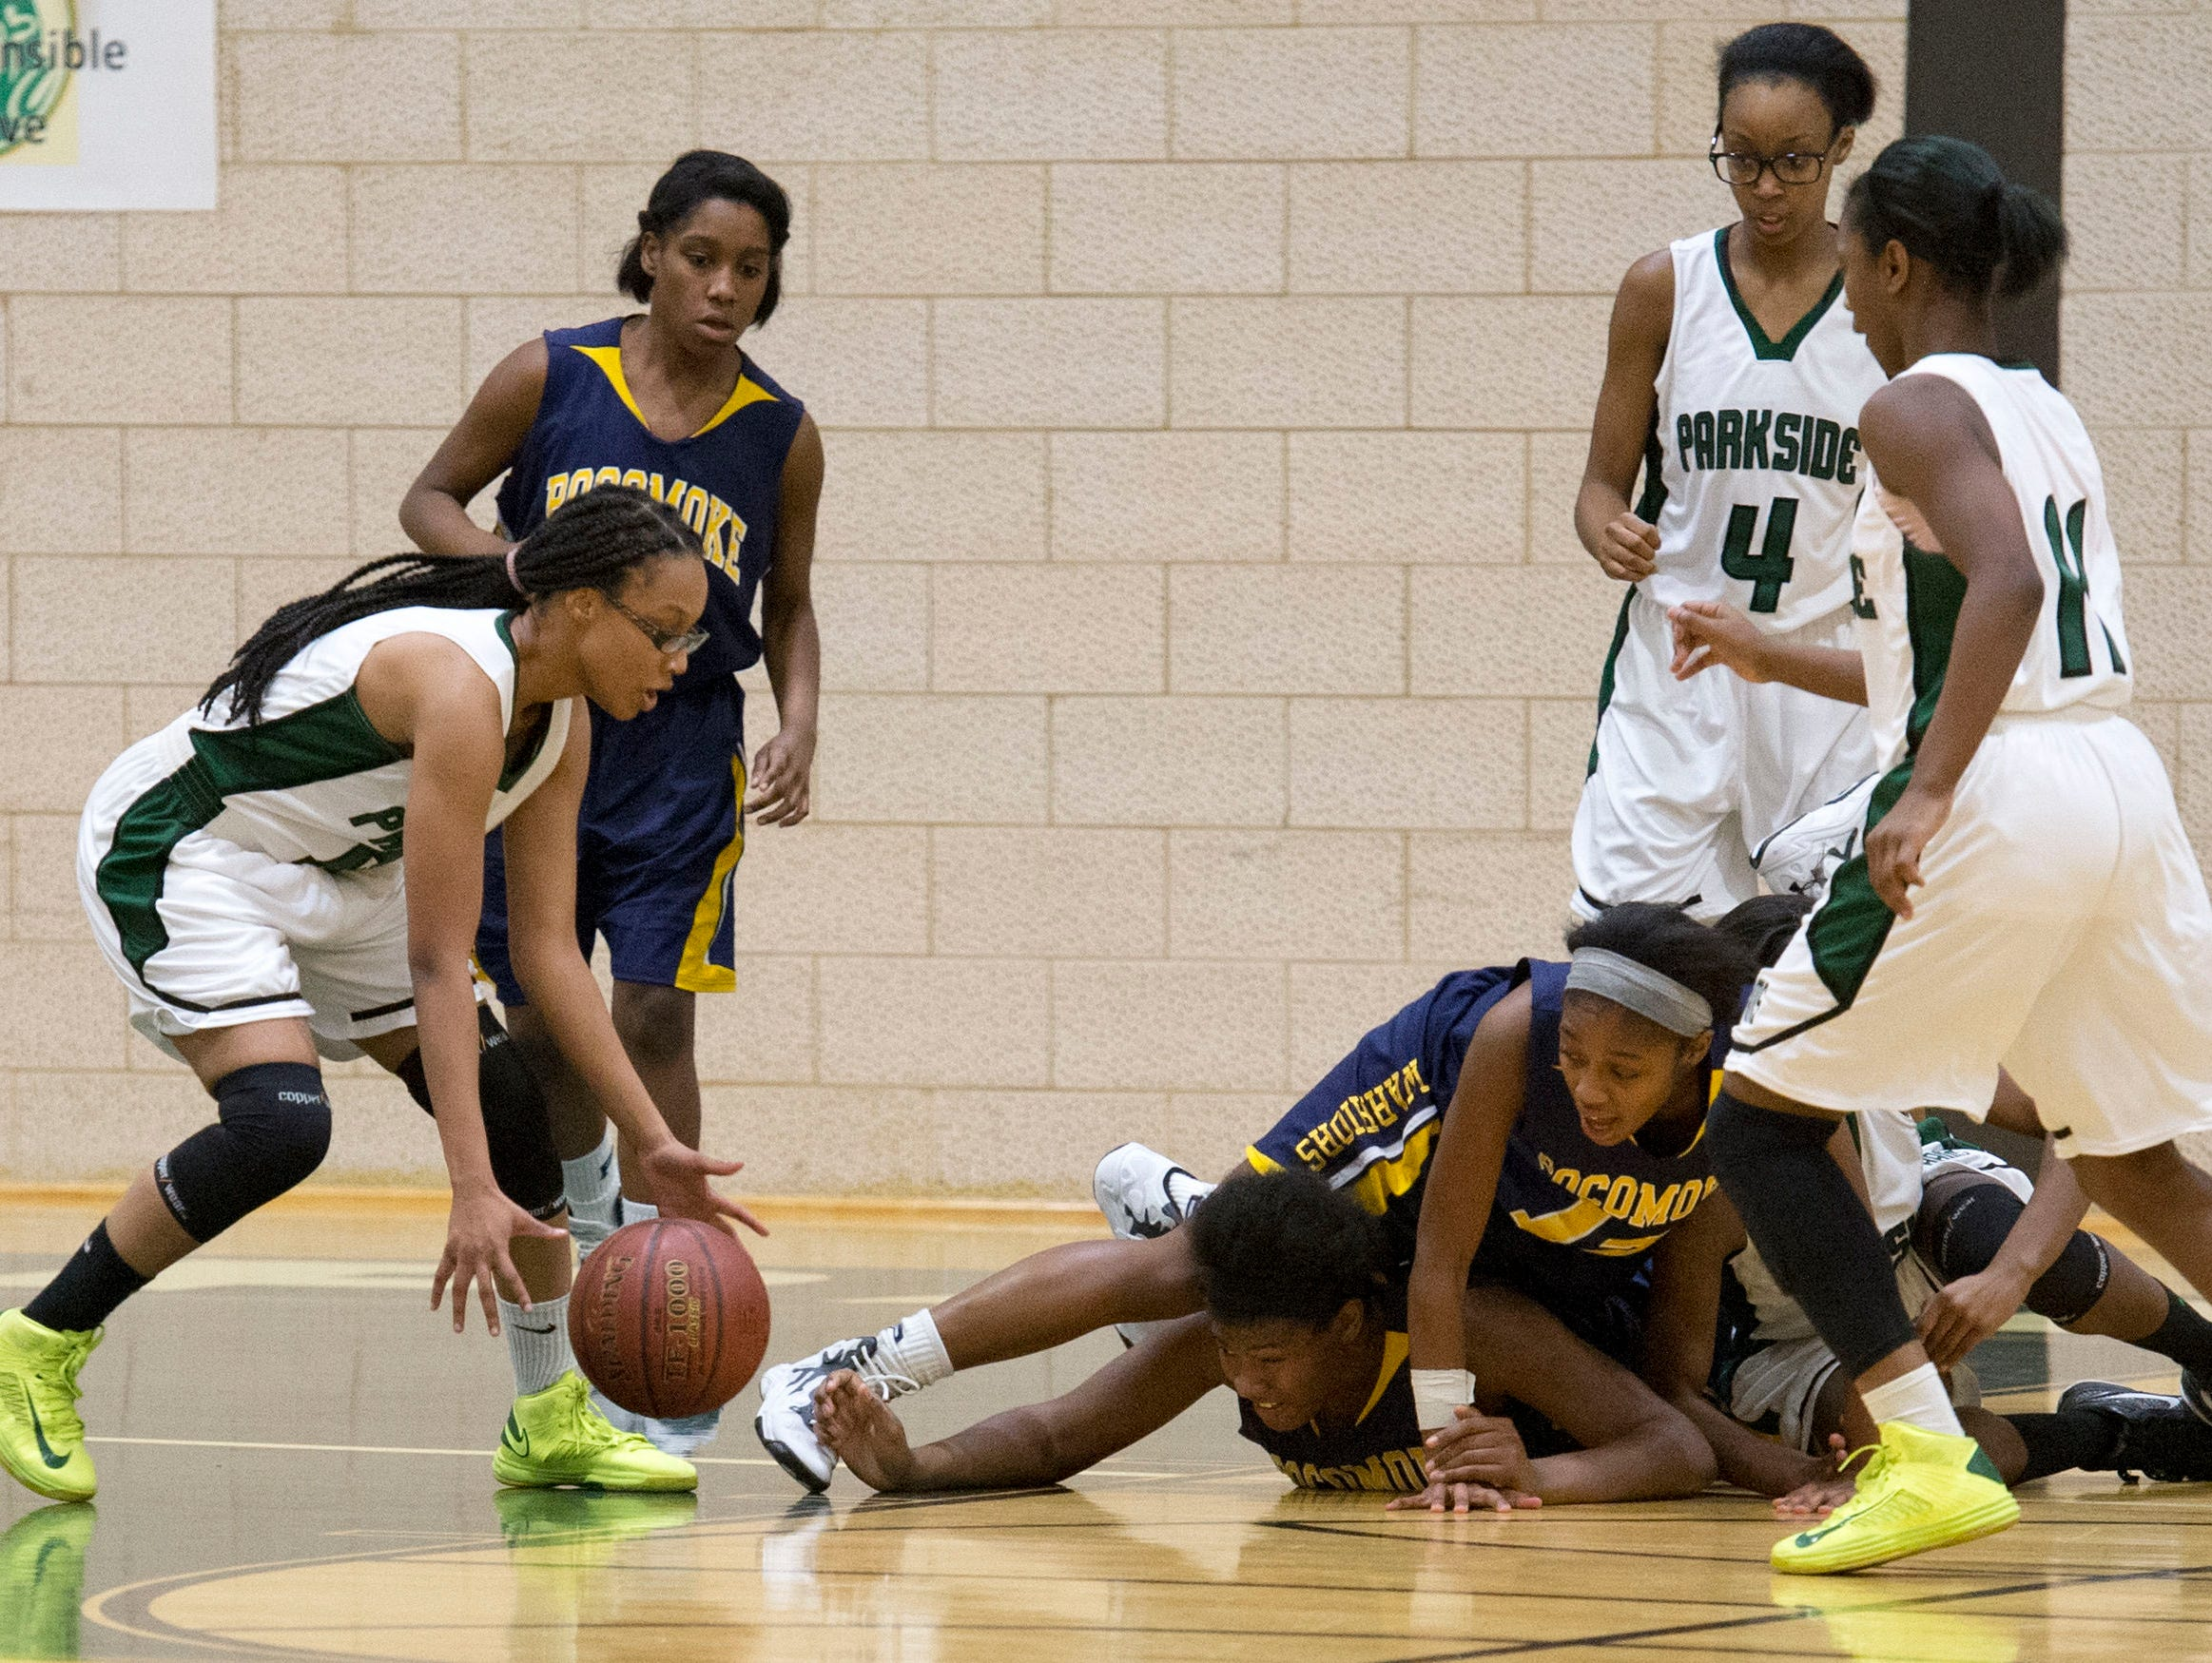 Parkside's Takeriah Jackson (5) grabs a loose ball during a game against Pocomoke at Parkside Tuesday.